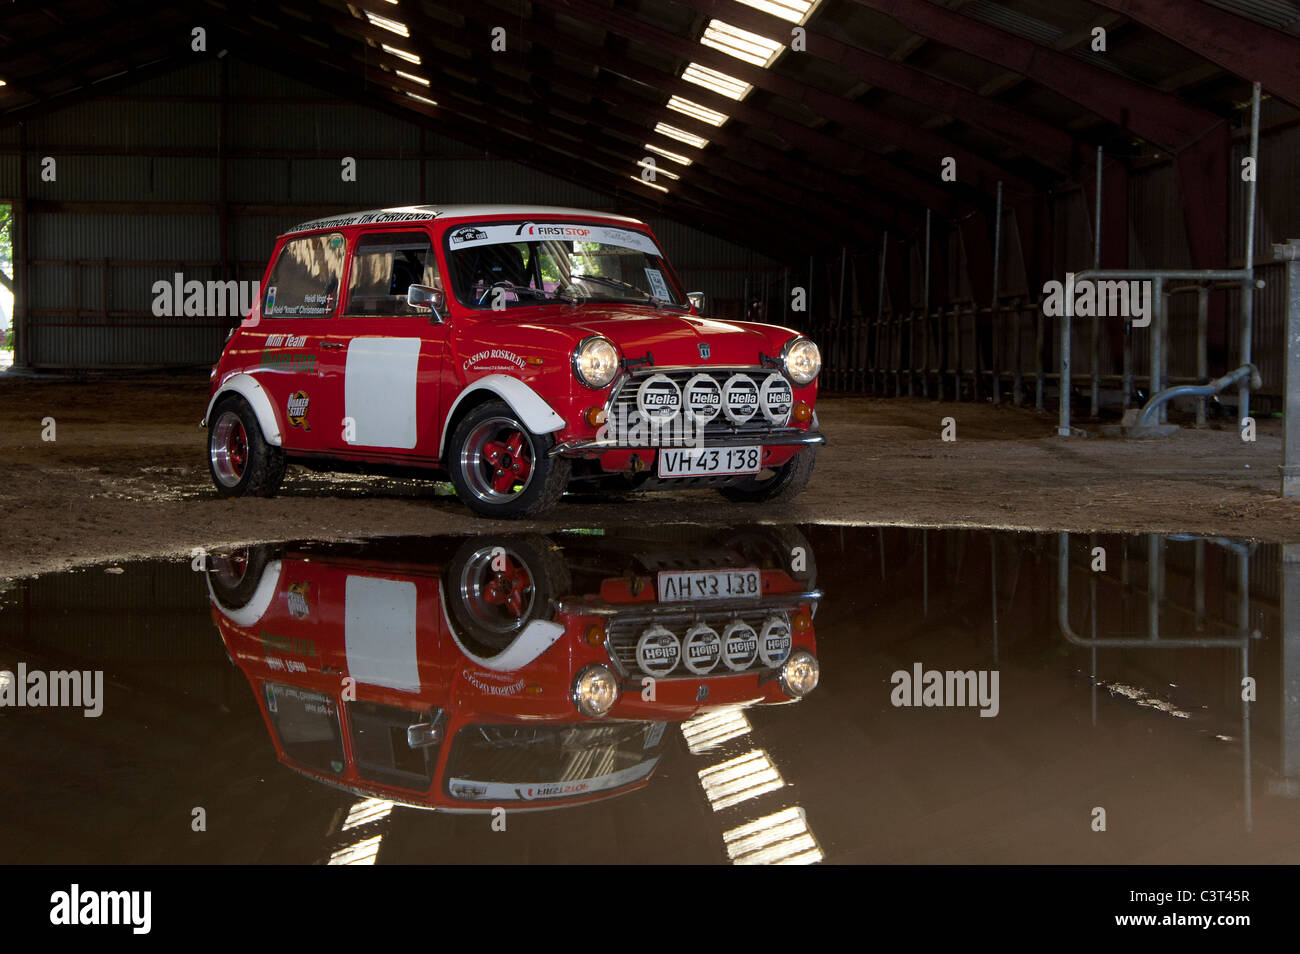 mini rally car photos mini rally car images alamy. Black Bedroom Furniture Sets. Home Design Ideas